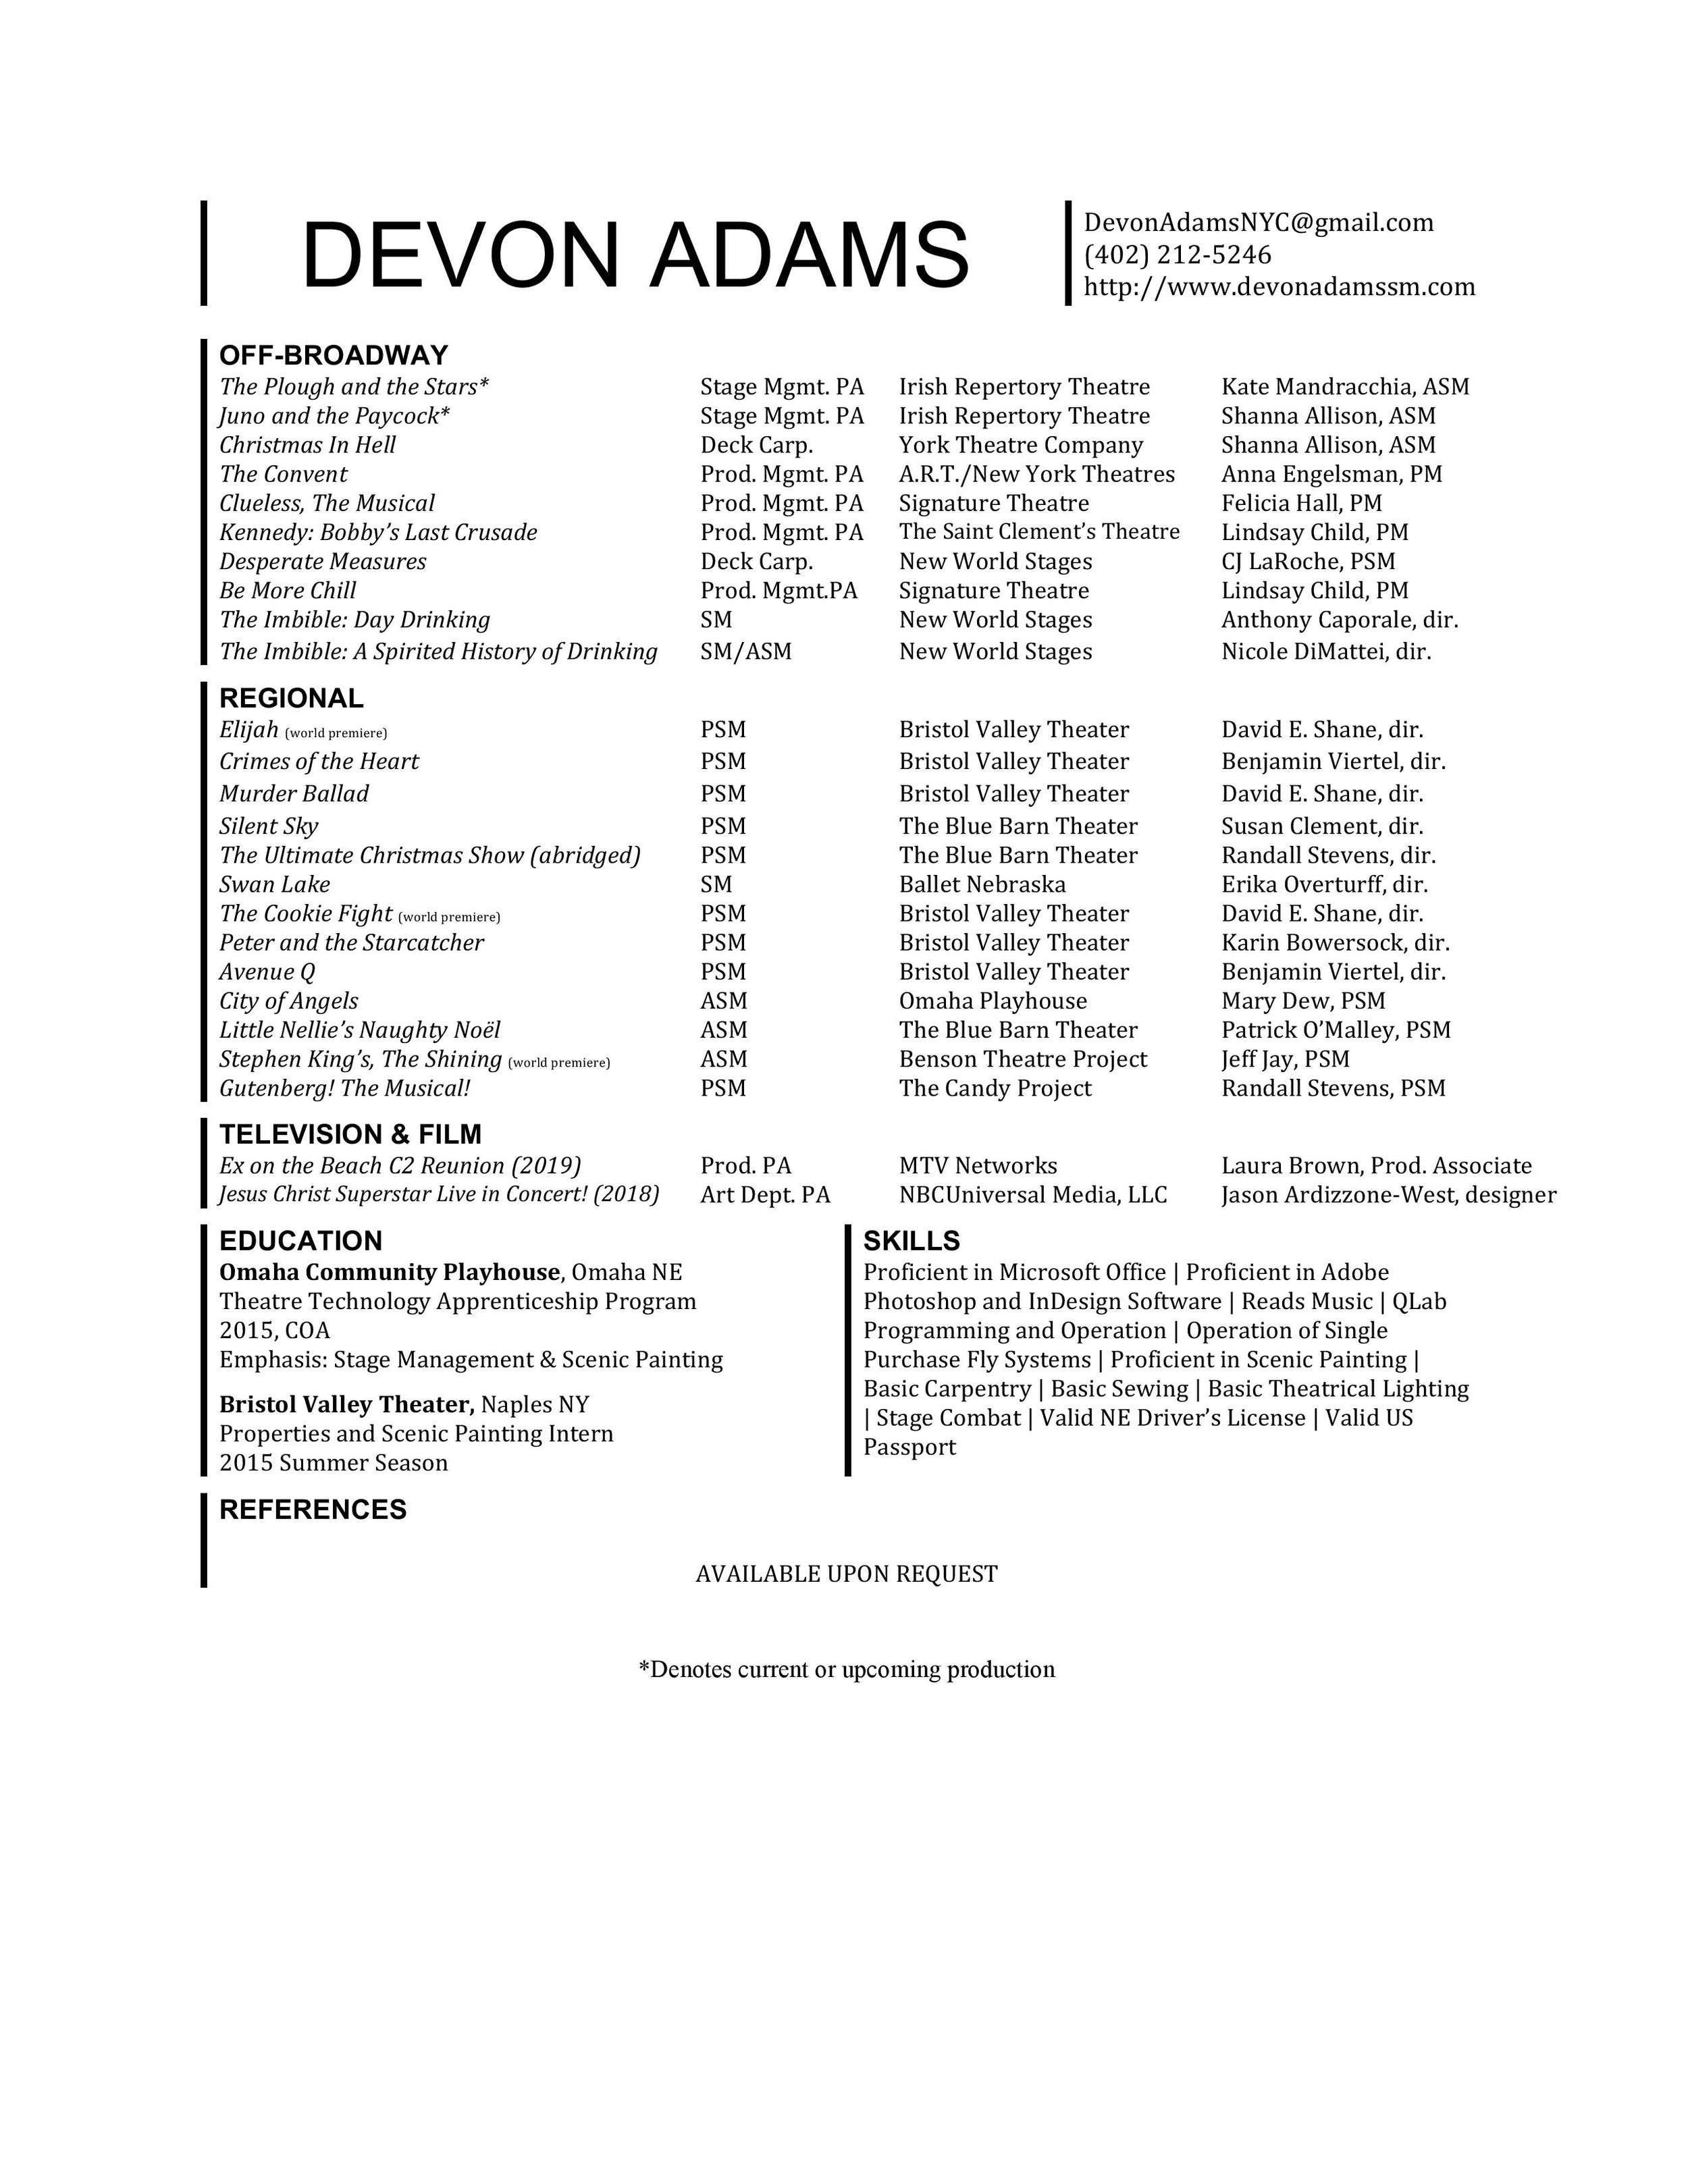 Devon Adams Resume.jpg